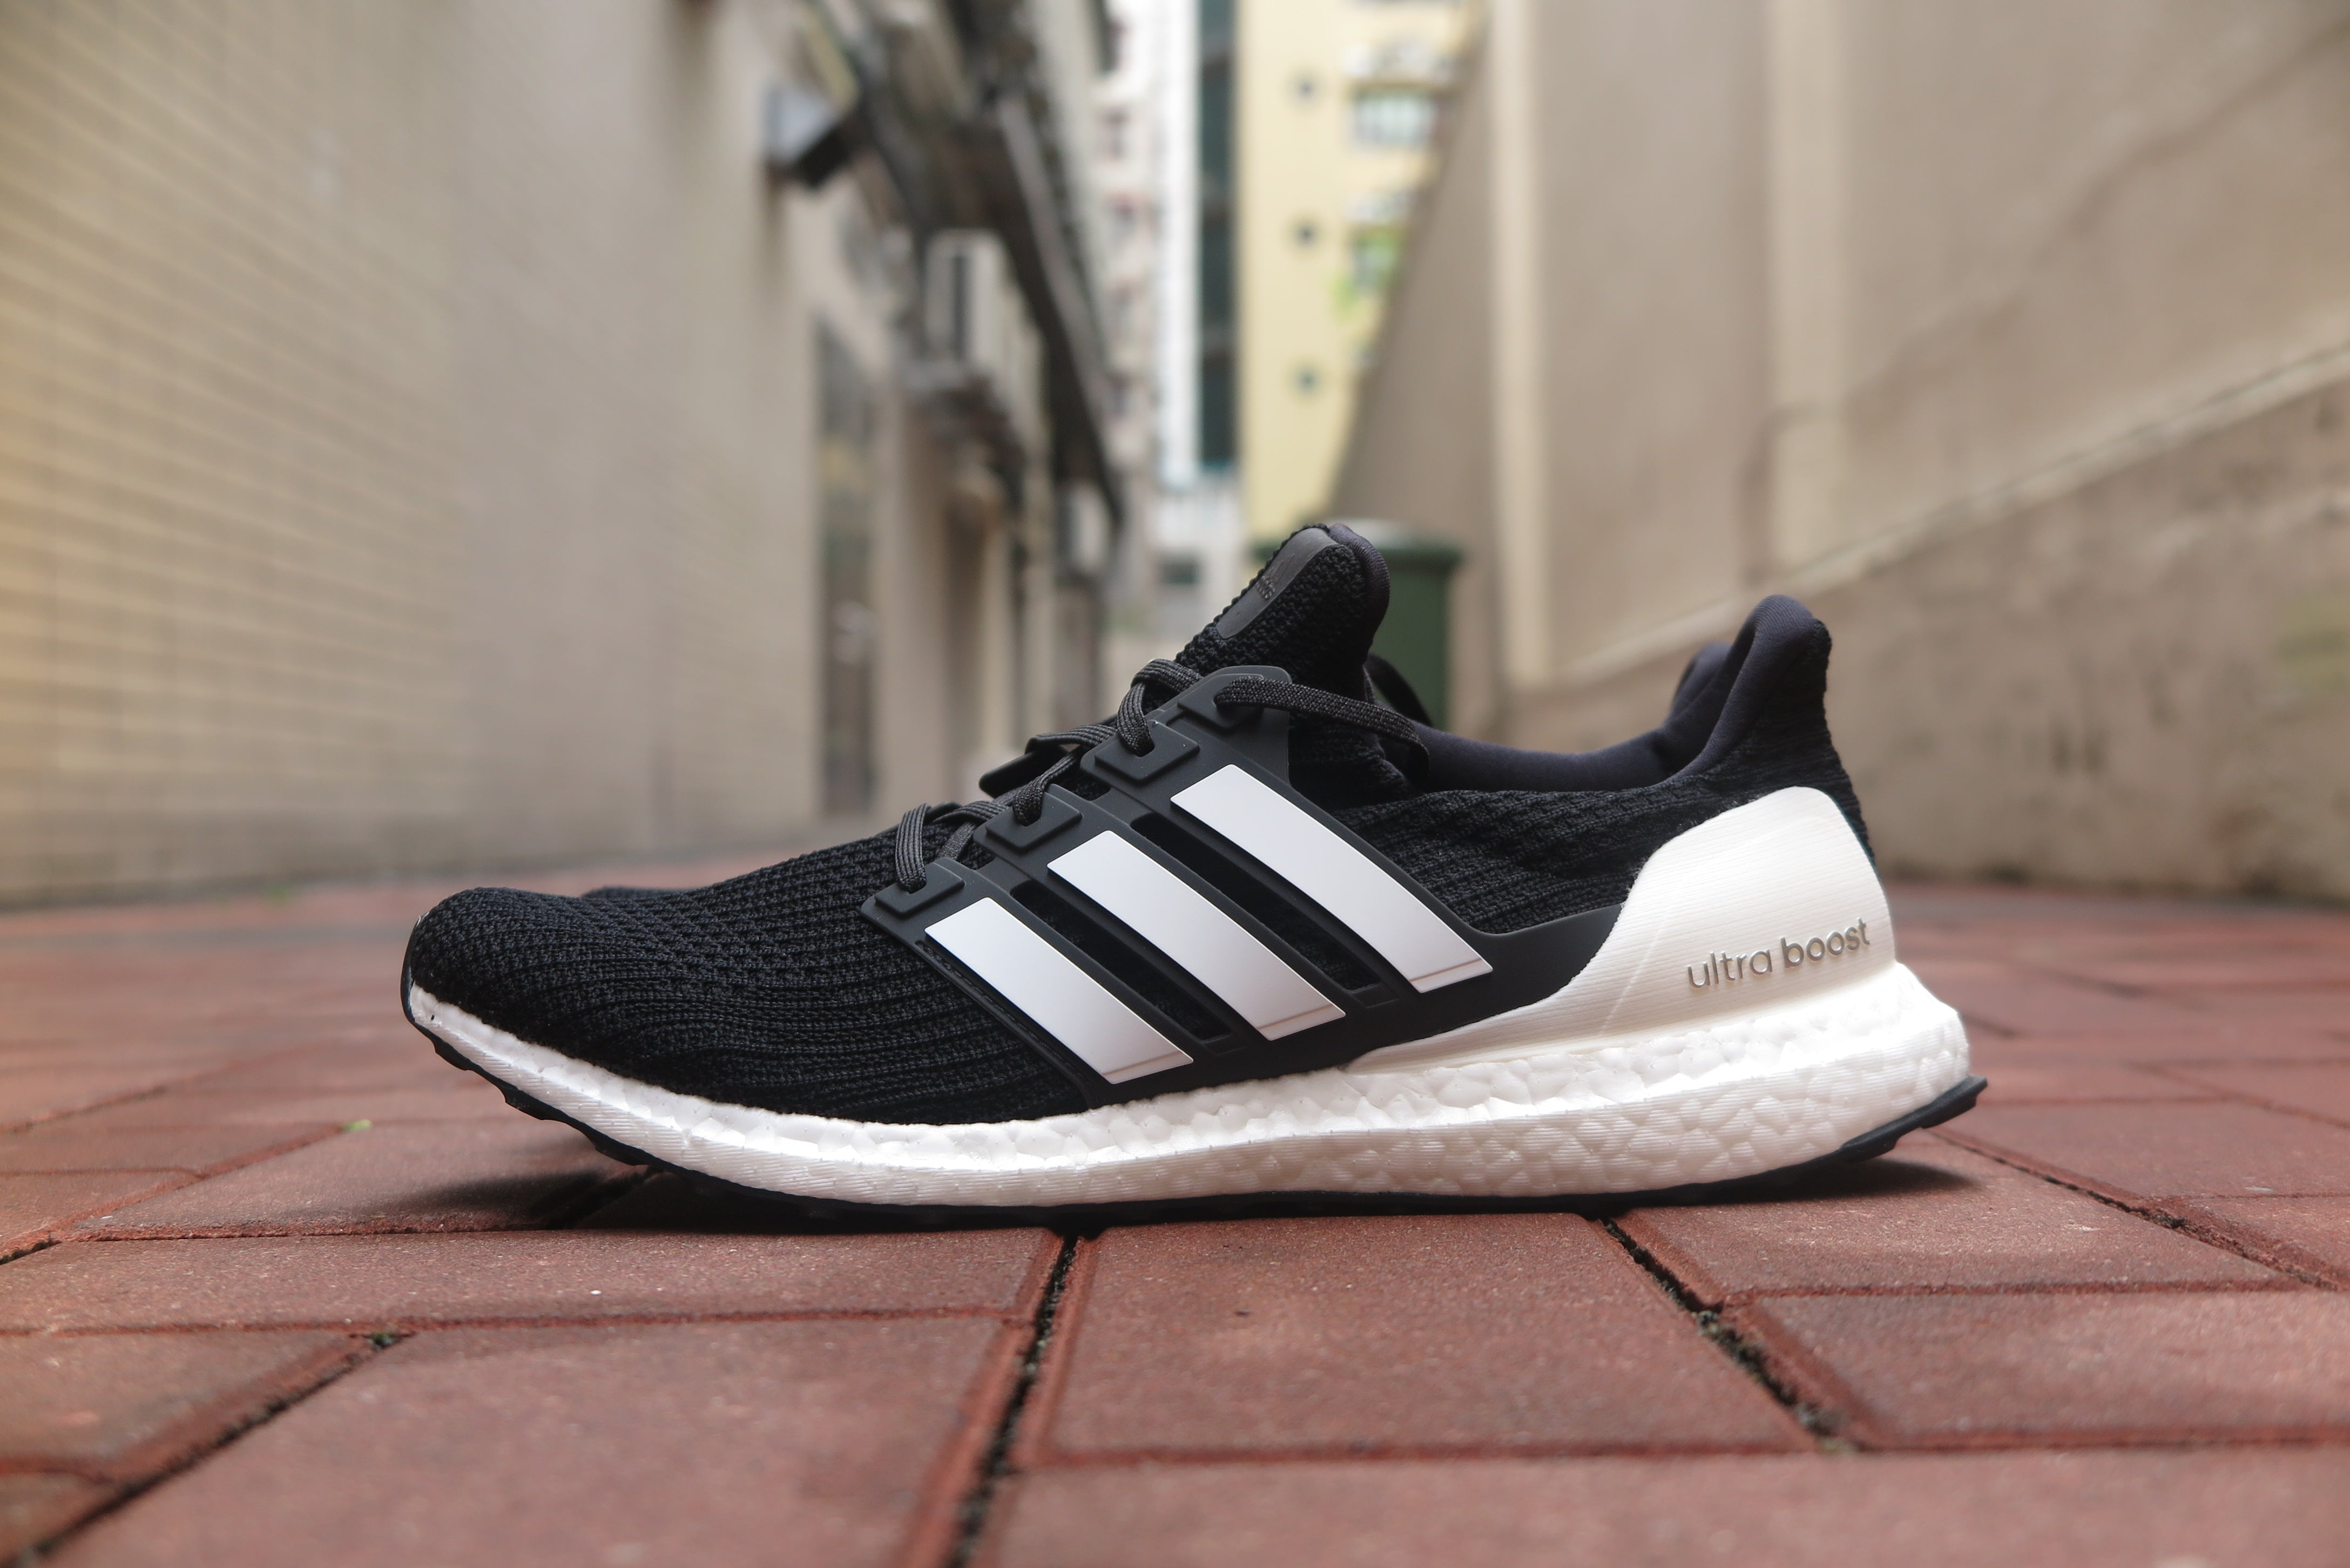 6d3cfd0259ee2 adidas Ultra Boost 4.0